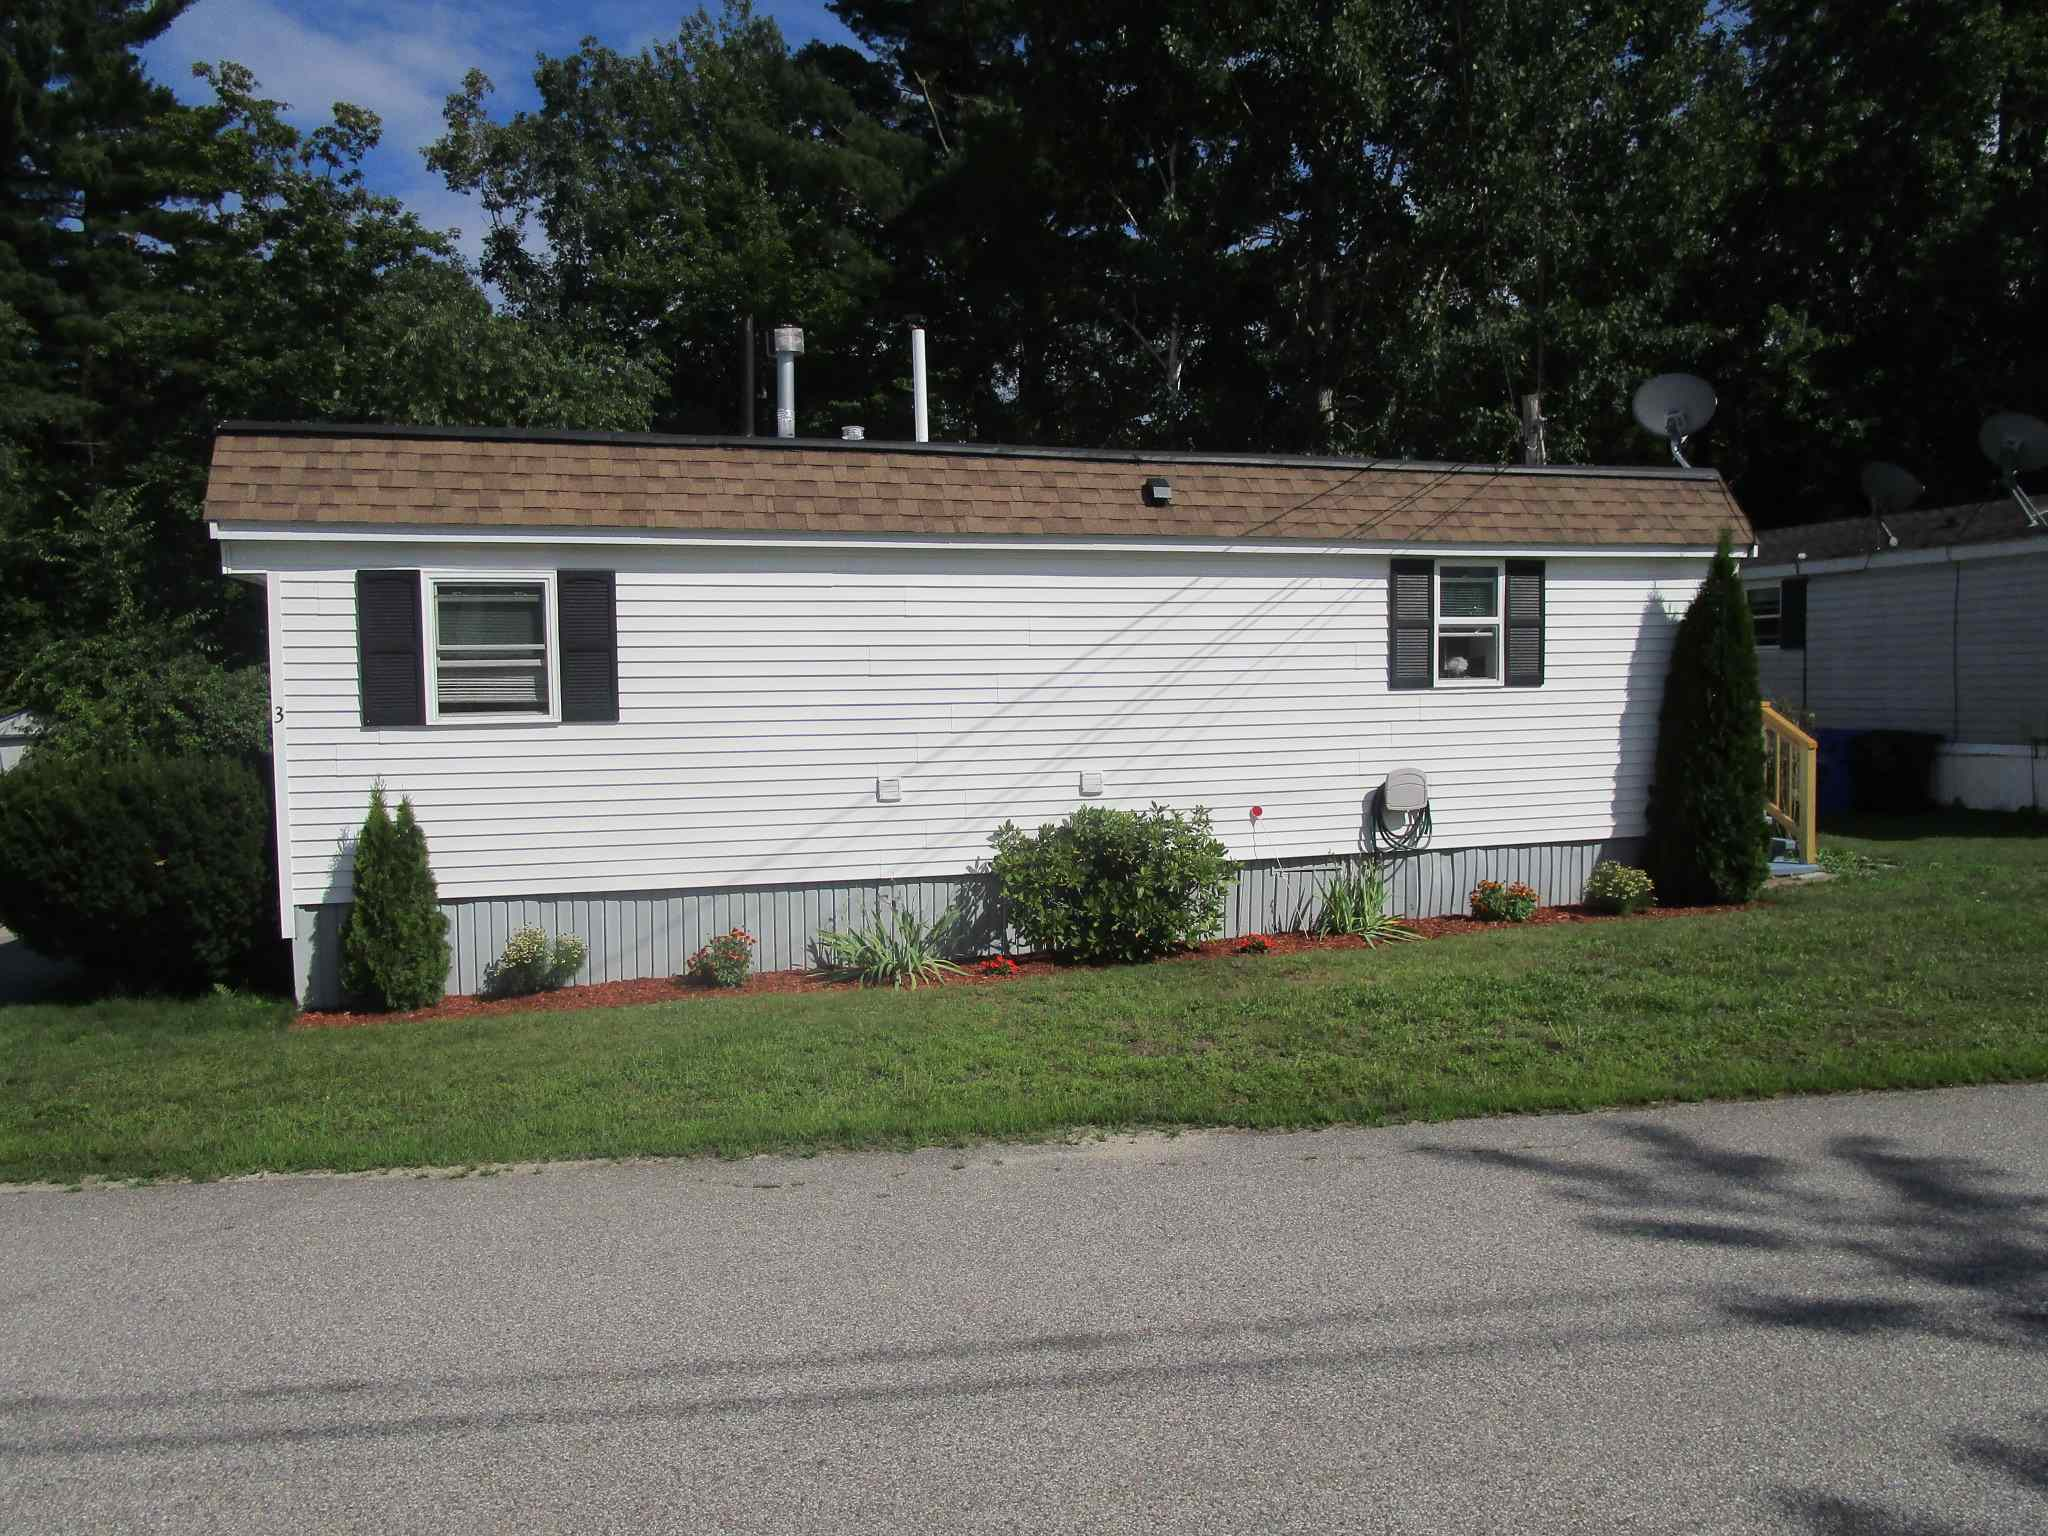 MLS 4816875: 3 Pond View Drive, Hudson NH